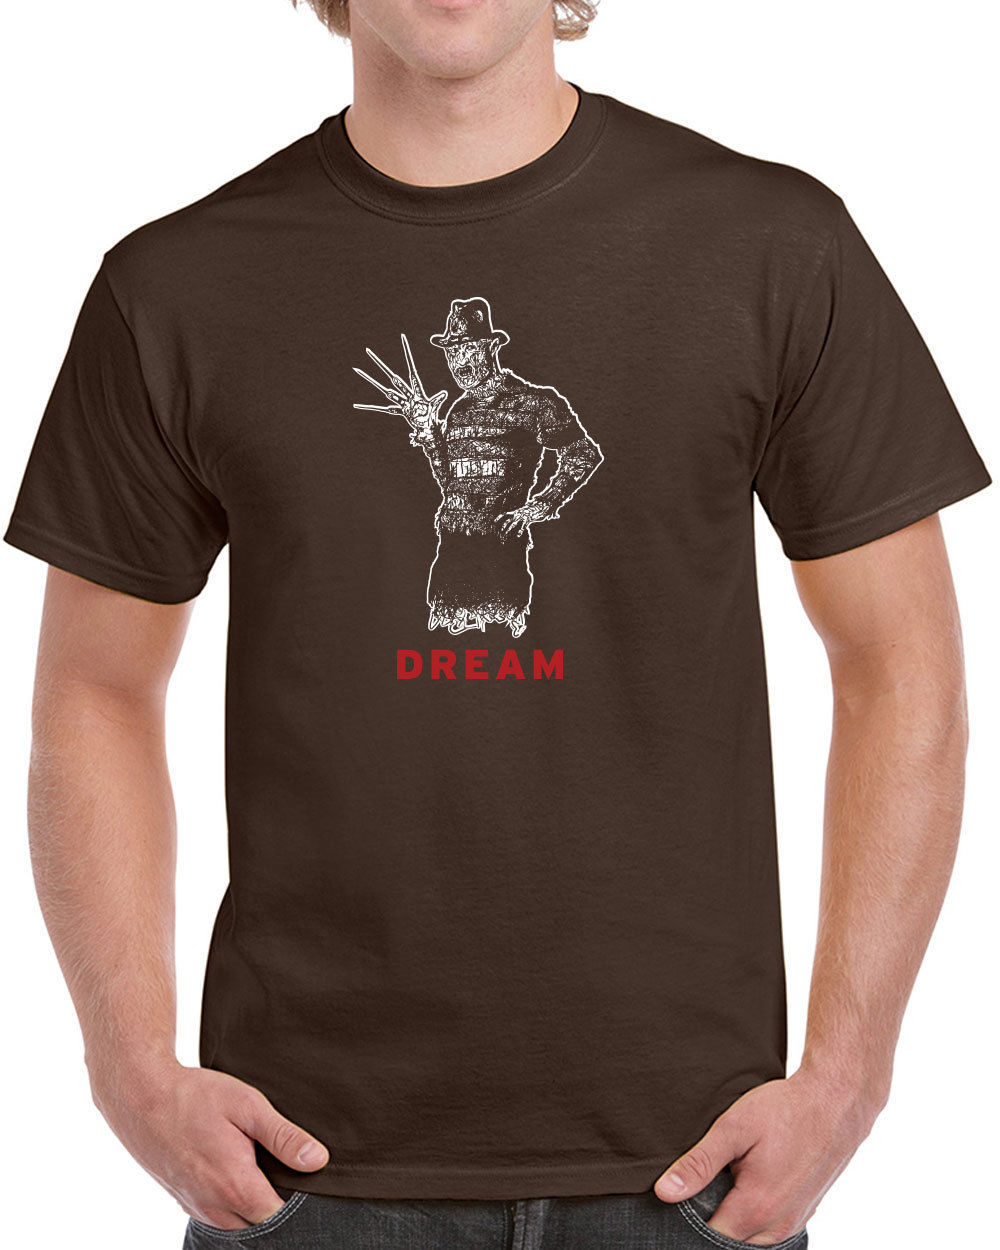 248 Dream mens T-shirt freddy nightmare horror scary movie 80s elm street retro